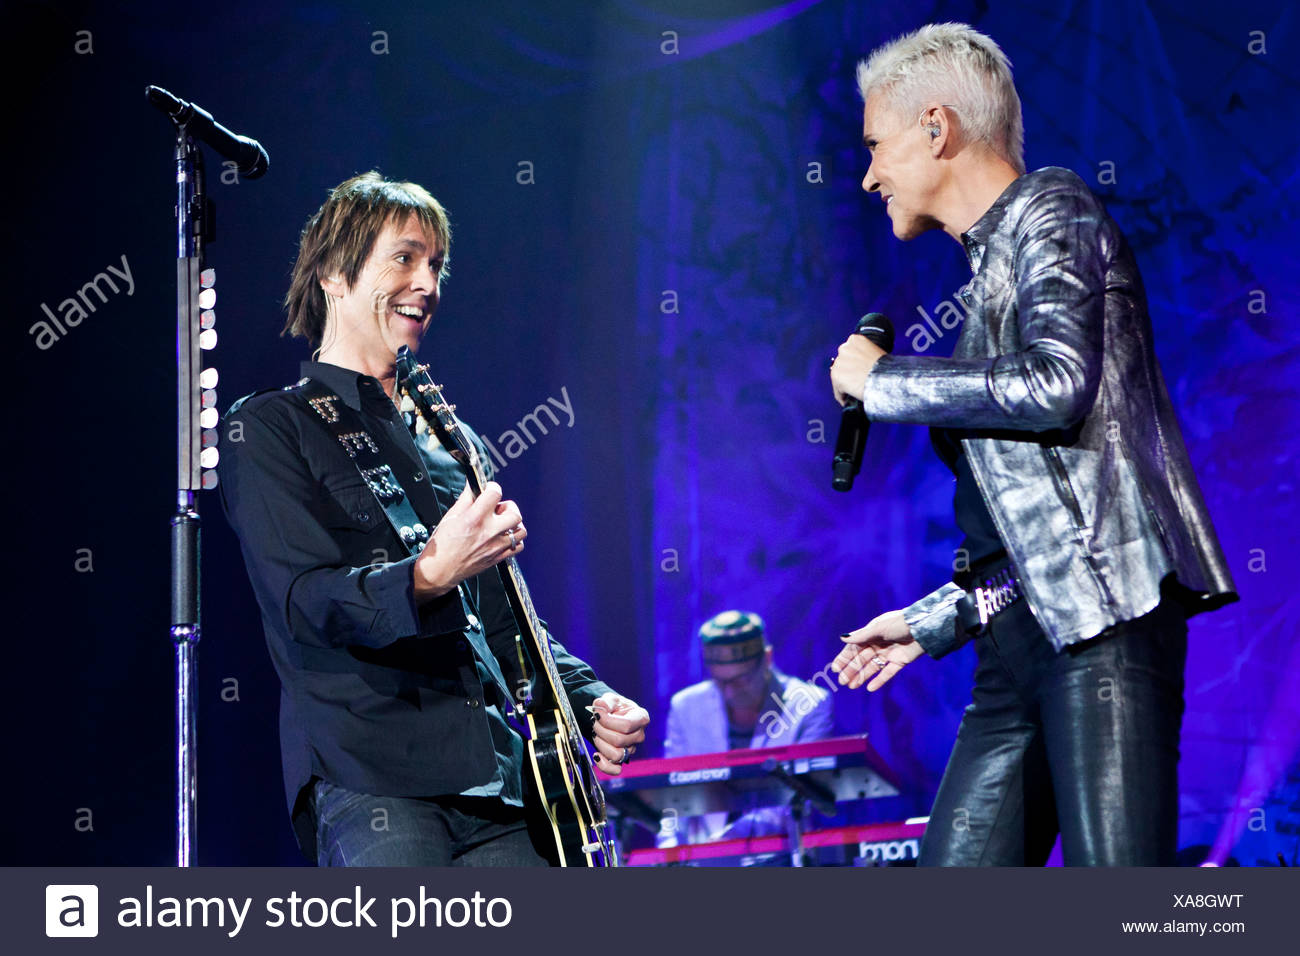 Swedish pop duo 'Roxette' with Marie Fredriksson and Per Gessle playing live at Hallenstadion in Zurich, Switzerland, Europe - Stock Image